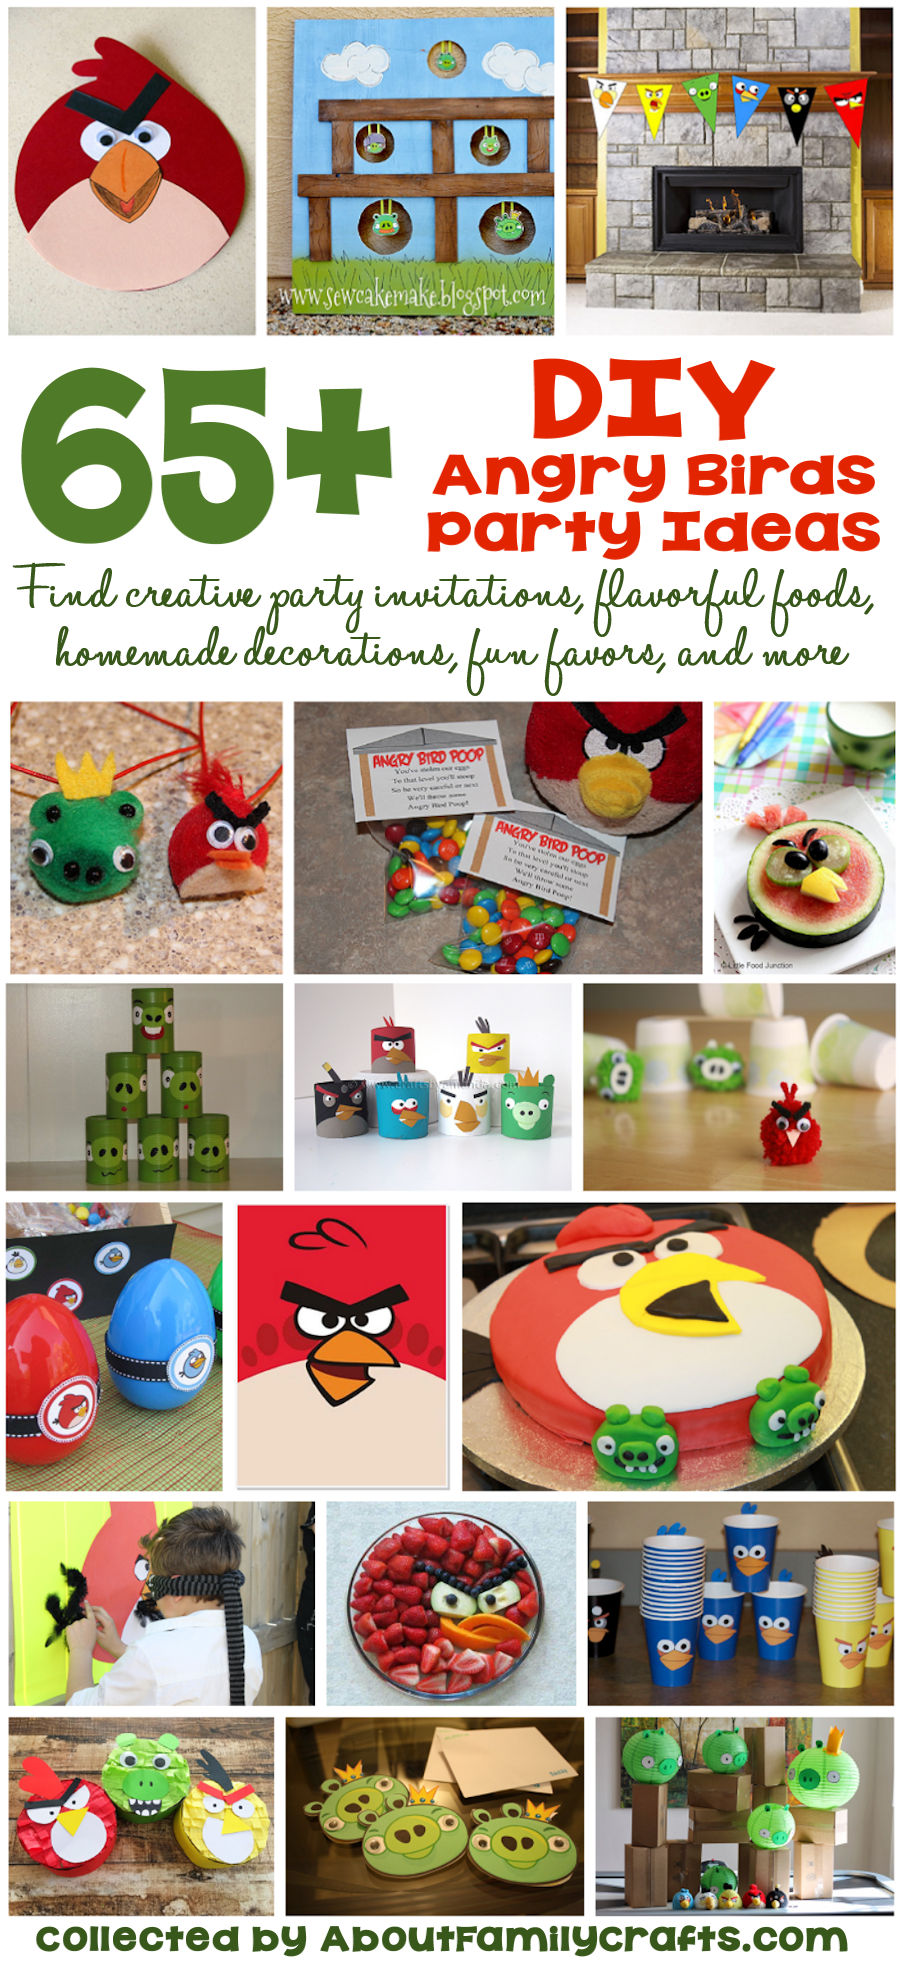 65 diy angry birds party ideas about family crafts for Angry birds birthday party decoration ideas